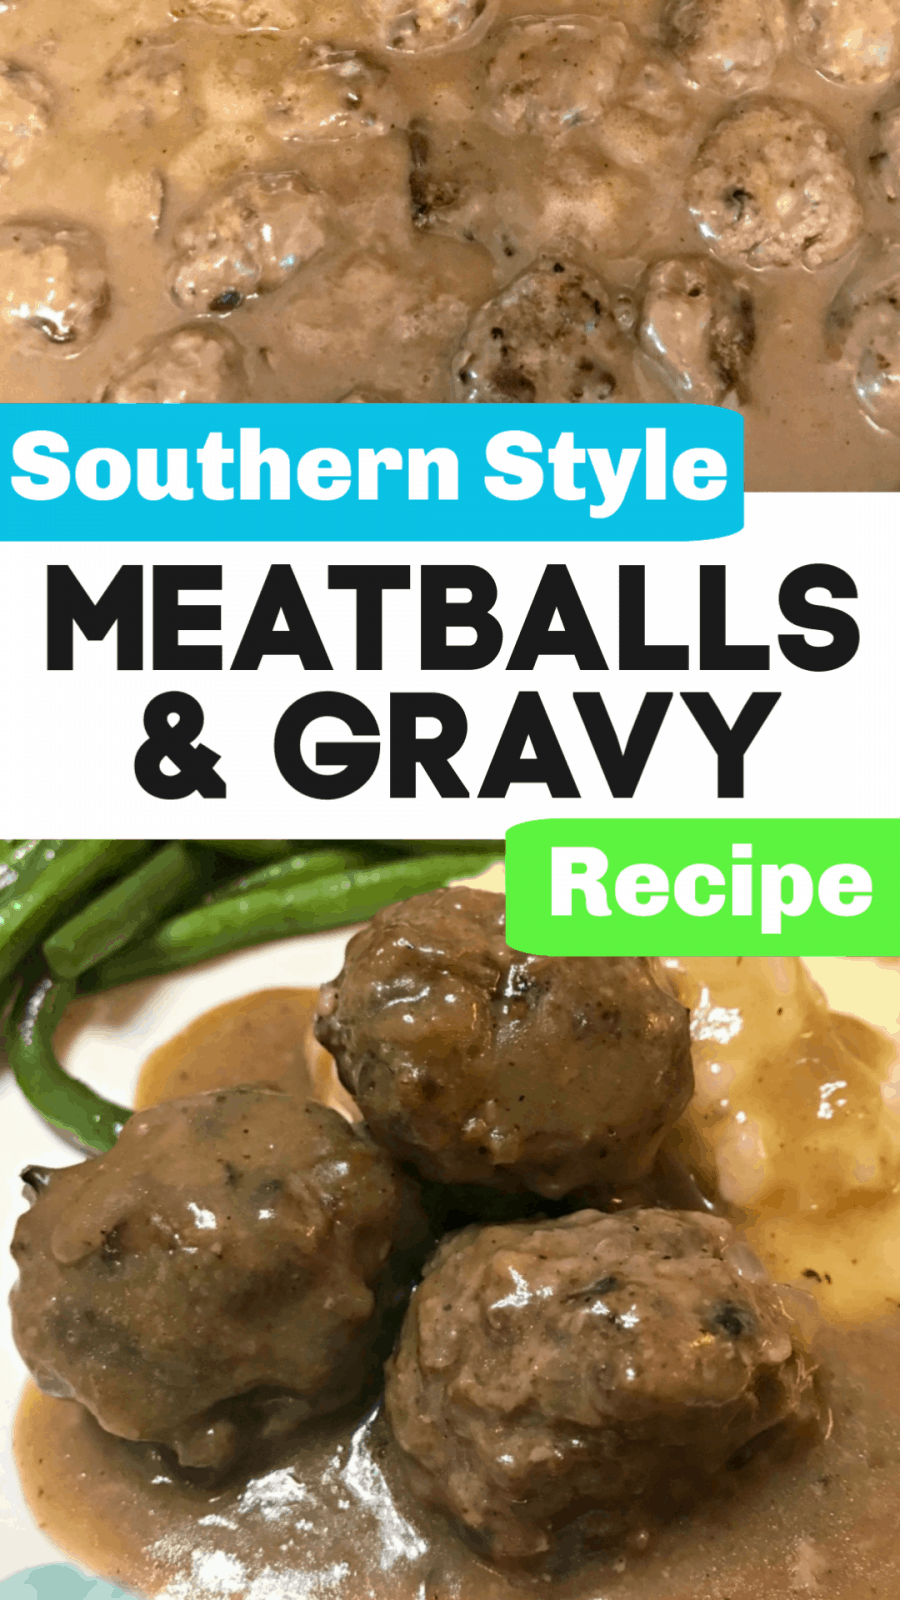 Southern Meatballs and Gravy Recipe